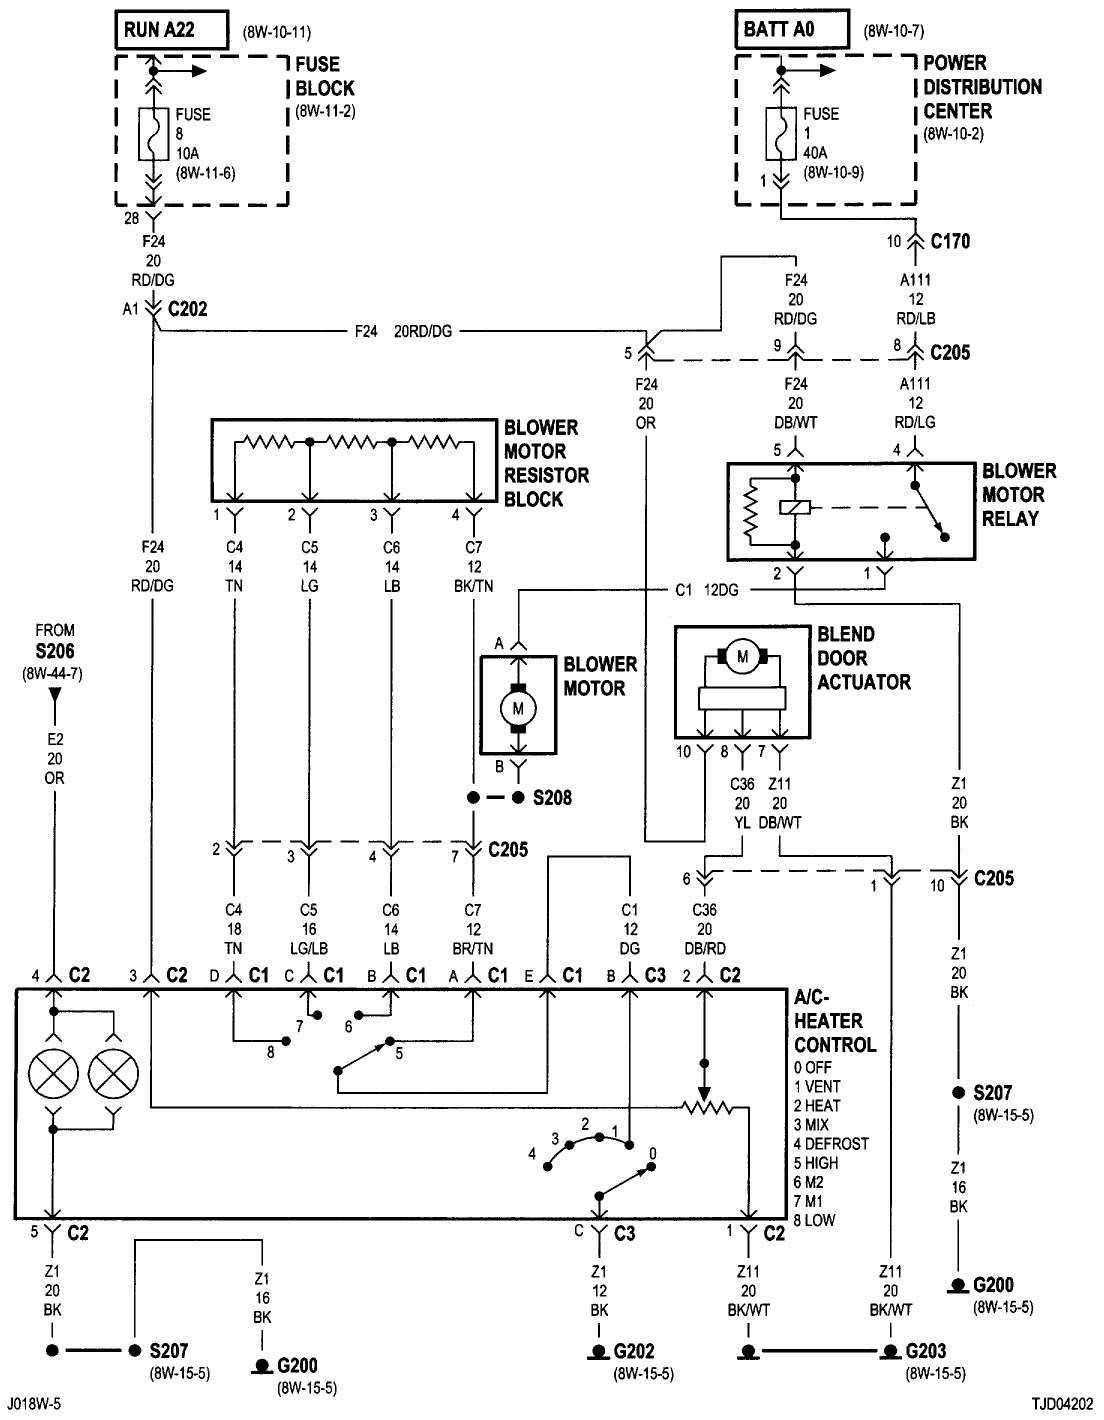 Wiring Diagram Electrical. Wiring Diagram Electrical